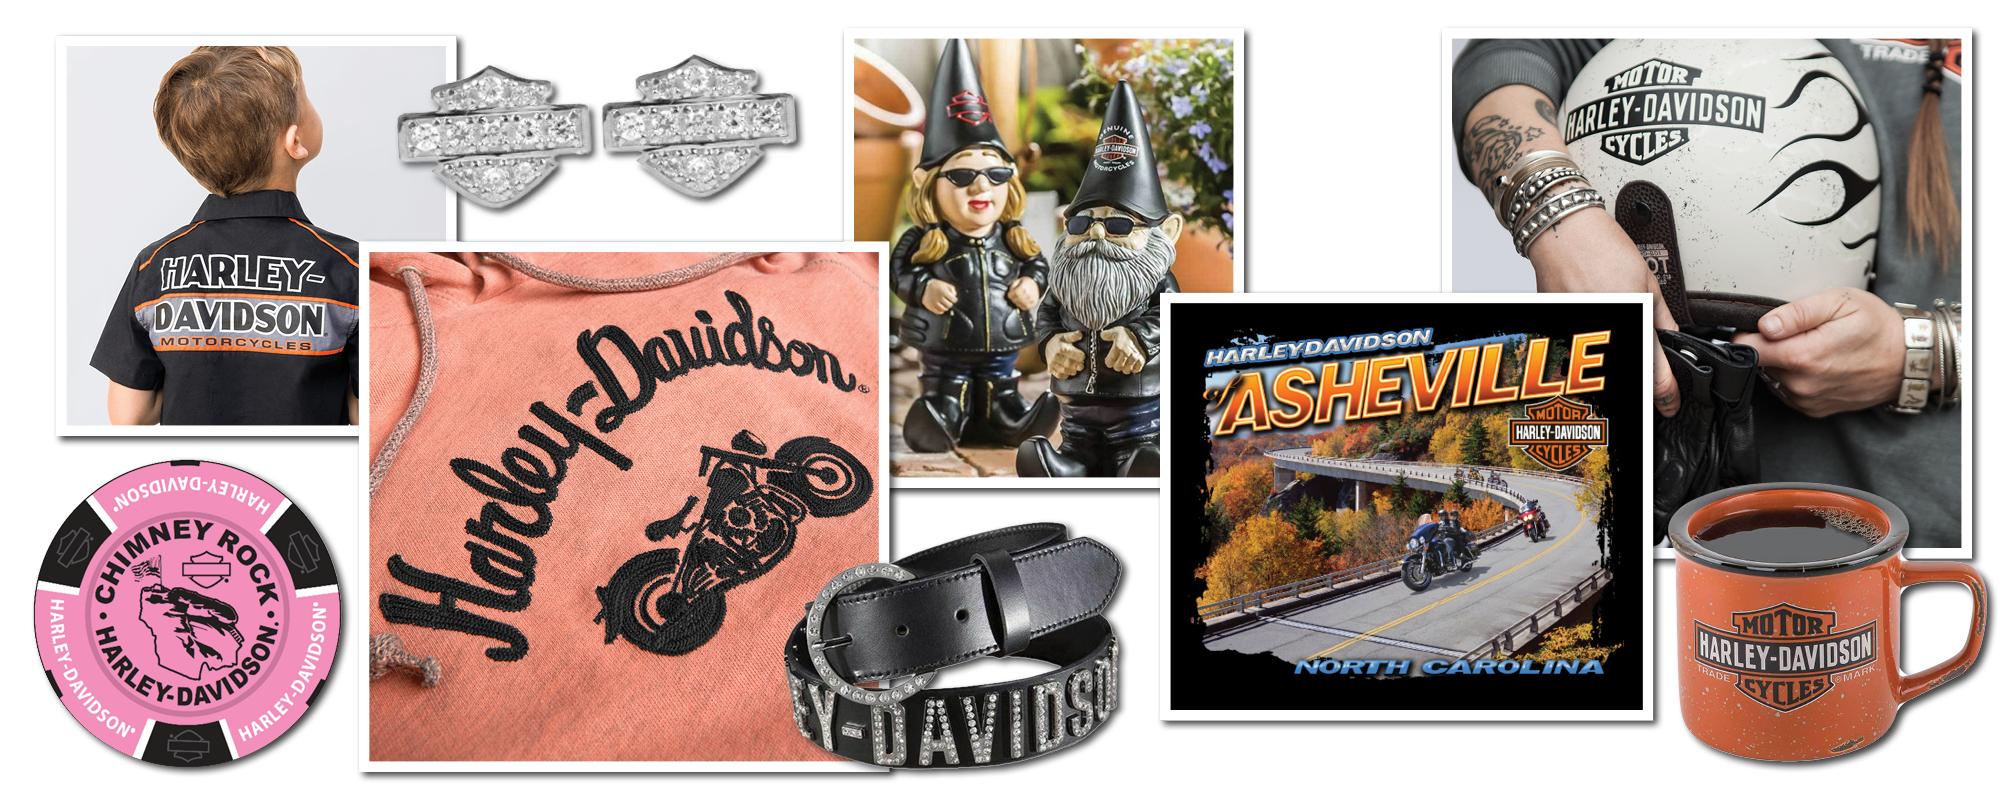 Ride in Style with Harley-Davidson of Asheville